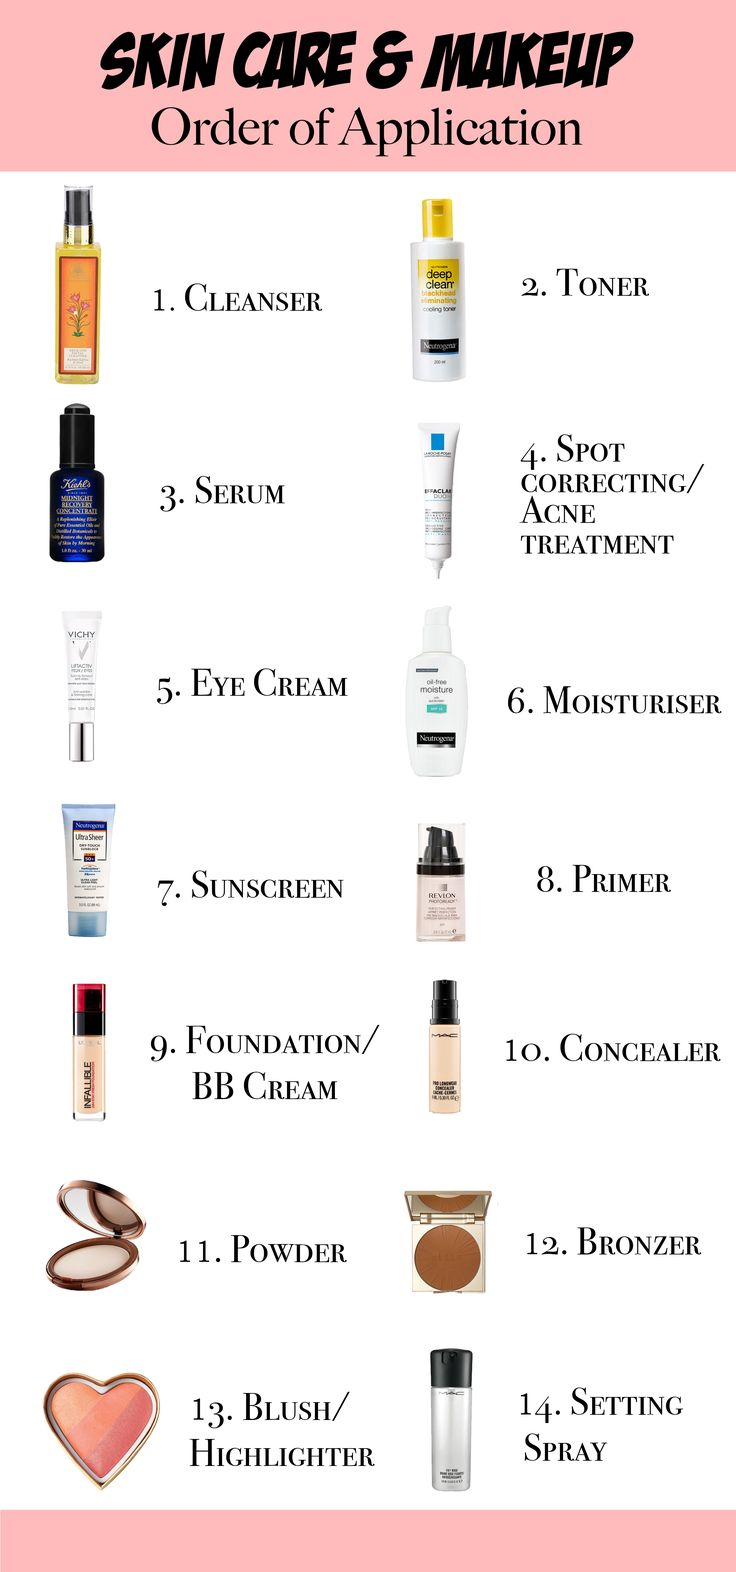 BB Cream vs. CC Cream, What is BB and CC Cream, BB Cream, CC Cream, Difference Between BB and CC Cream, BB Cream Meaning, CC Cream Means